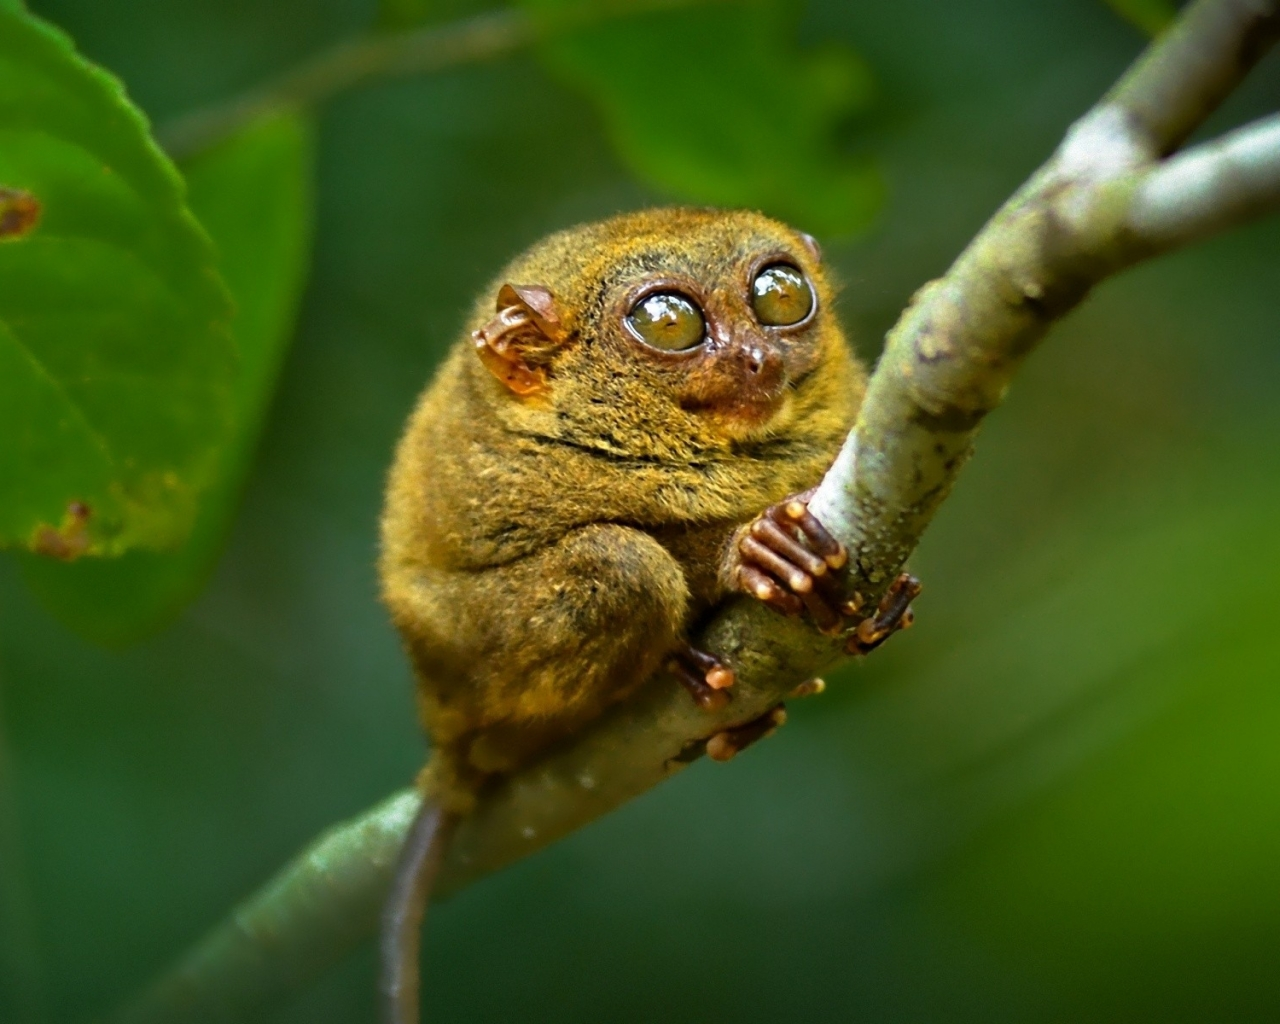 Tarsier Pictures and Wallpapers - Pets Cute and Docile